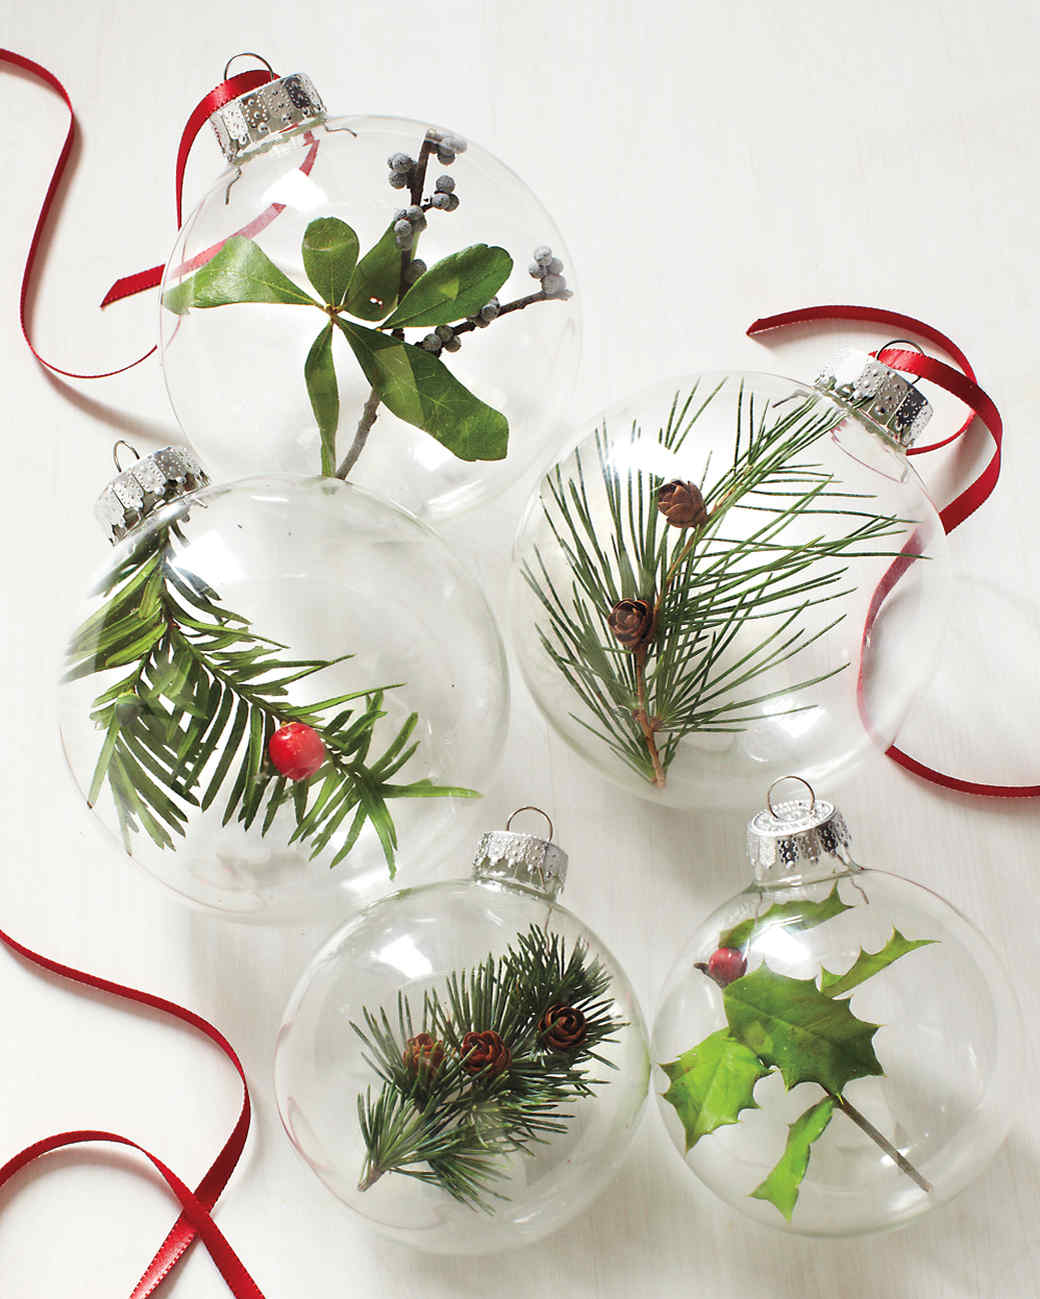 20 of Our Most Memorable DIY Christmas Ornament Projects | Martha ...